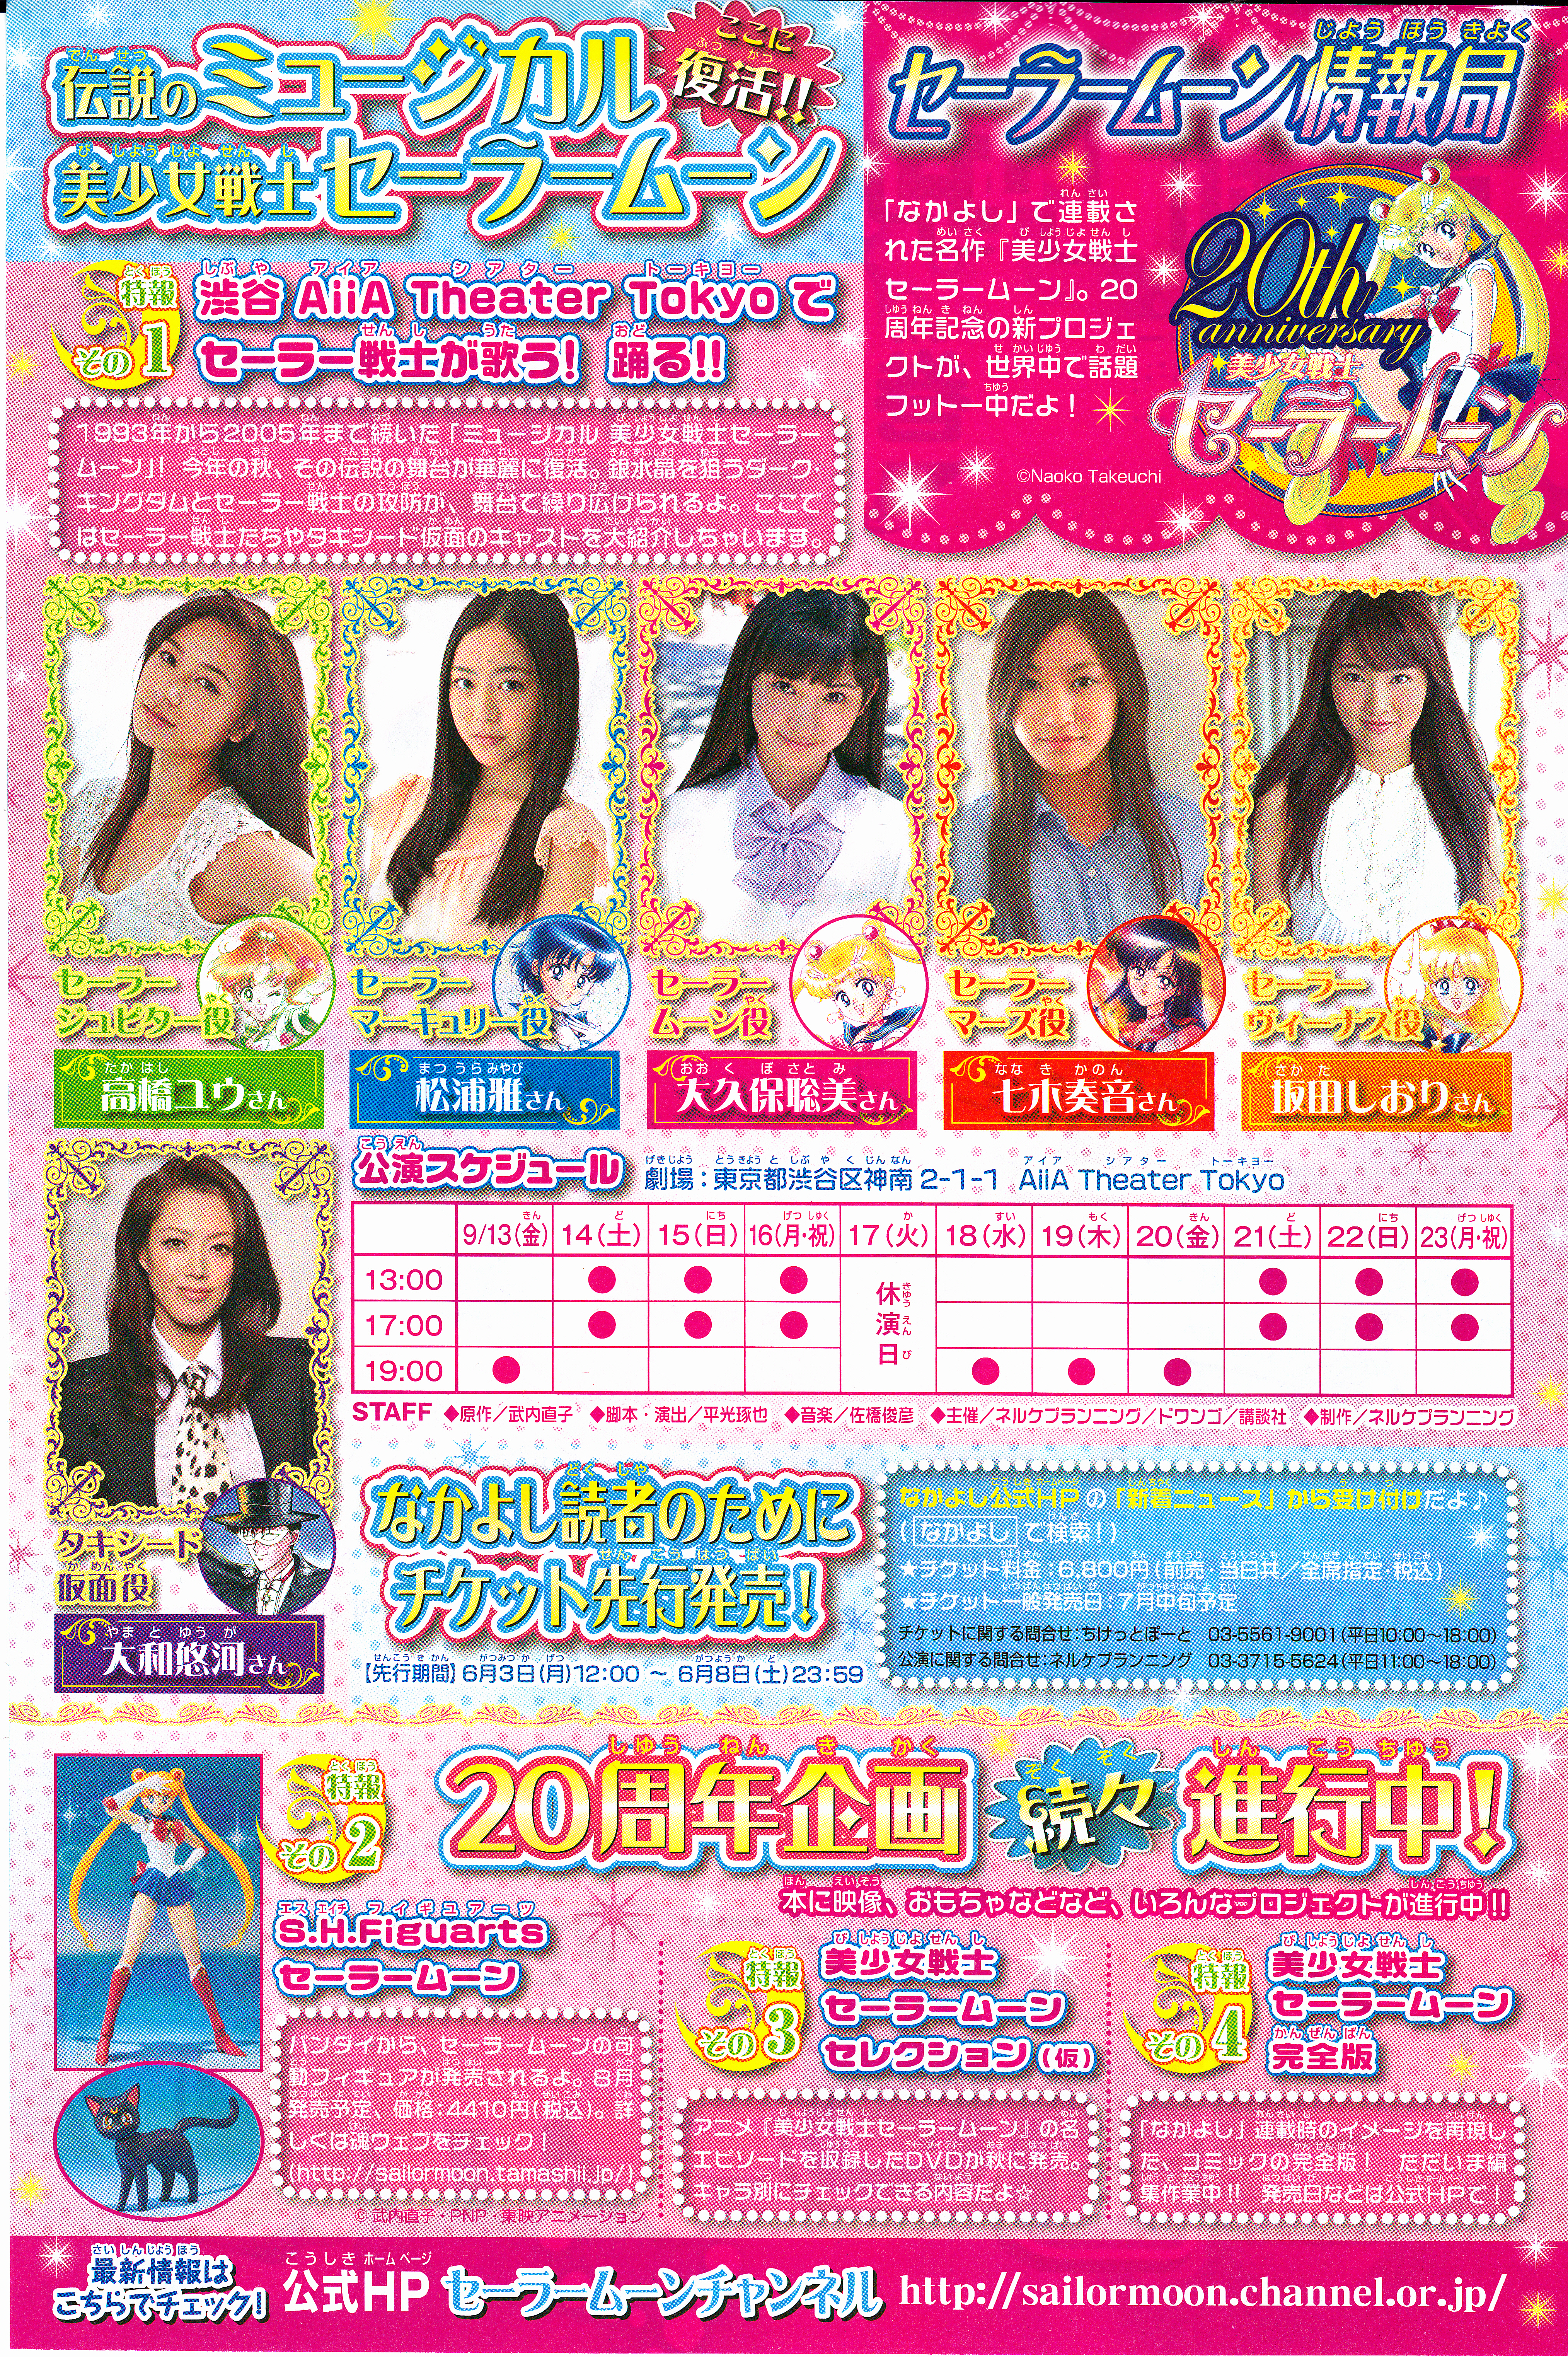 New Sailor Moon Musical Flyer from Nakayoshi in Japanese